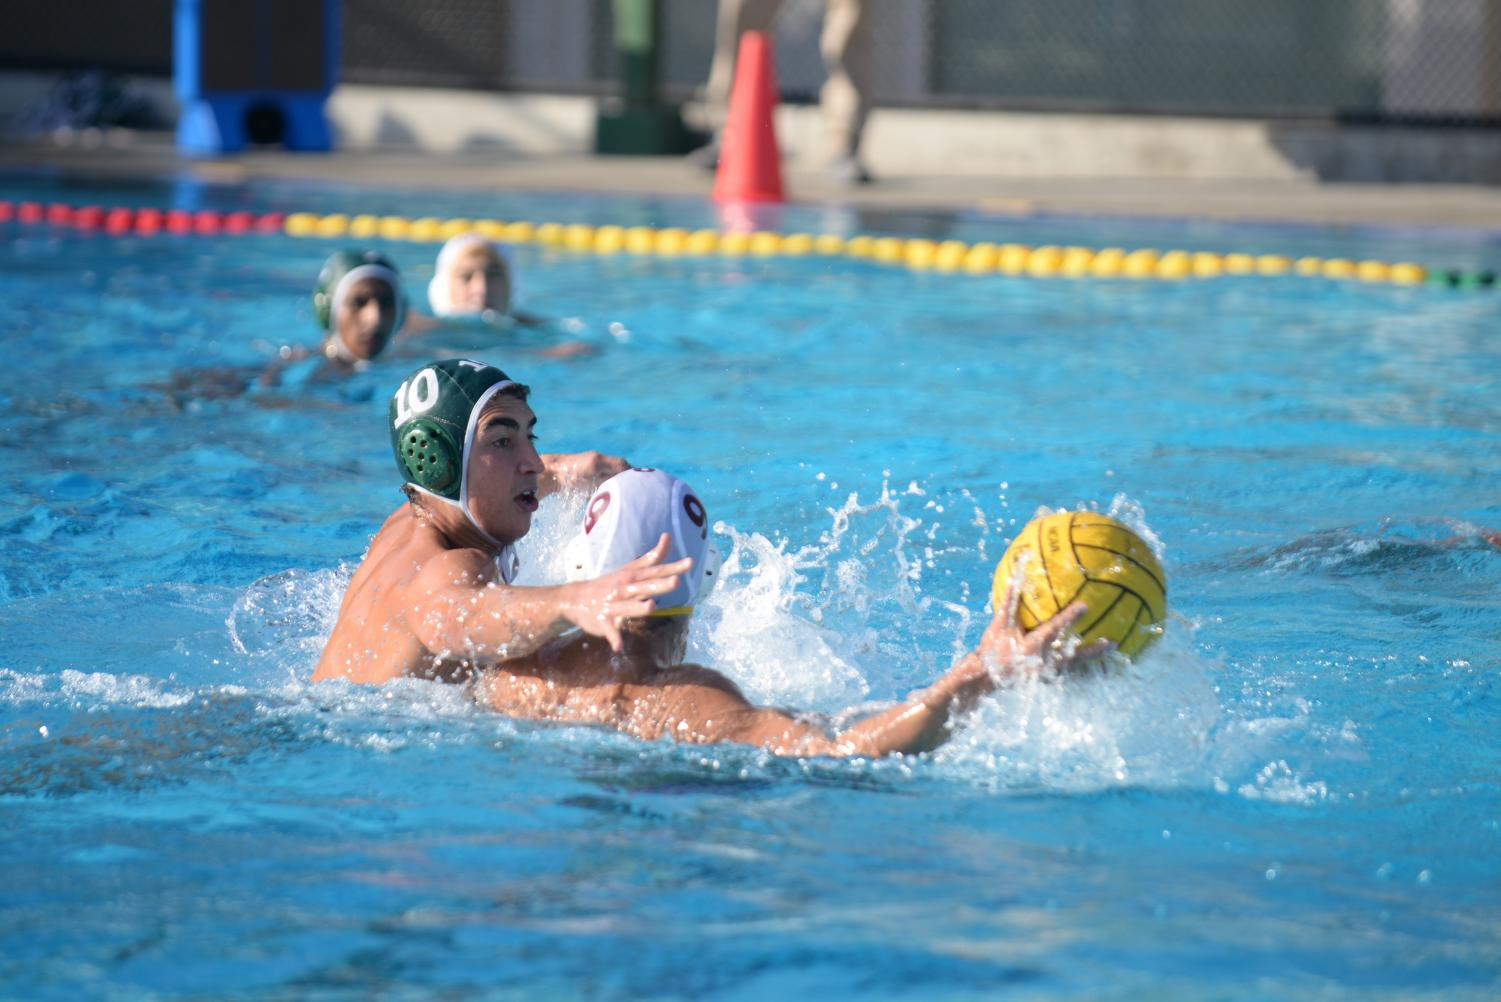 Matthew Hajjar (12) reaches for the ball, playing defense against a Cupertino player.  The first half finished 6-3 in favor of the Eagles, with Harker goals scored by Bobby and Matthew.